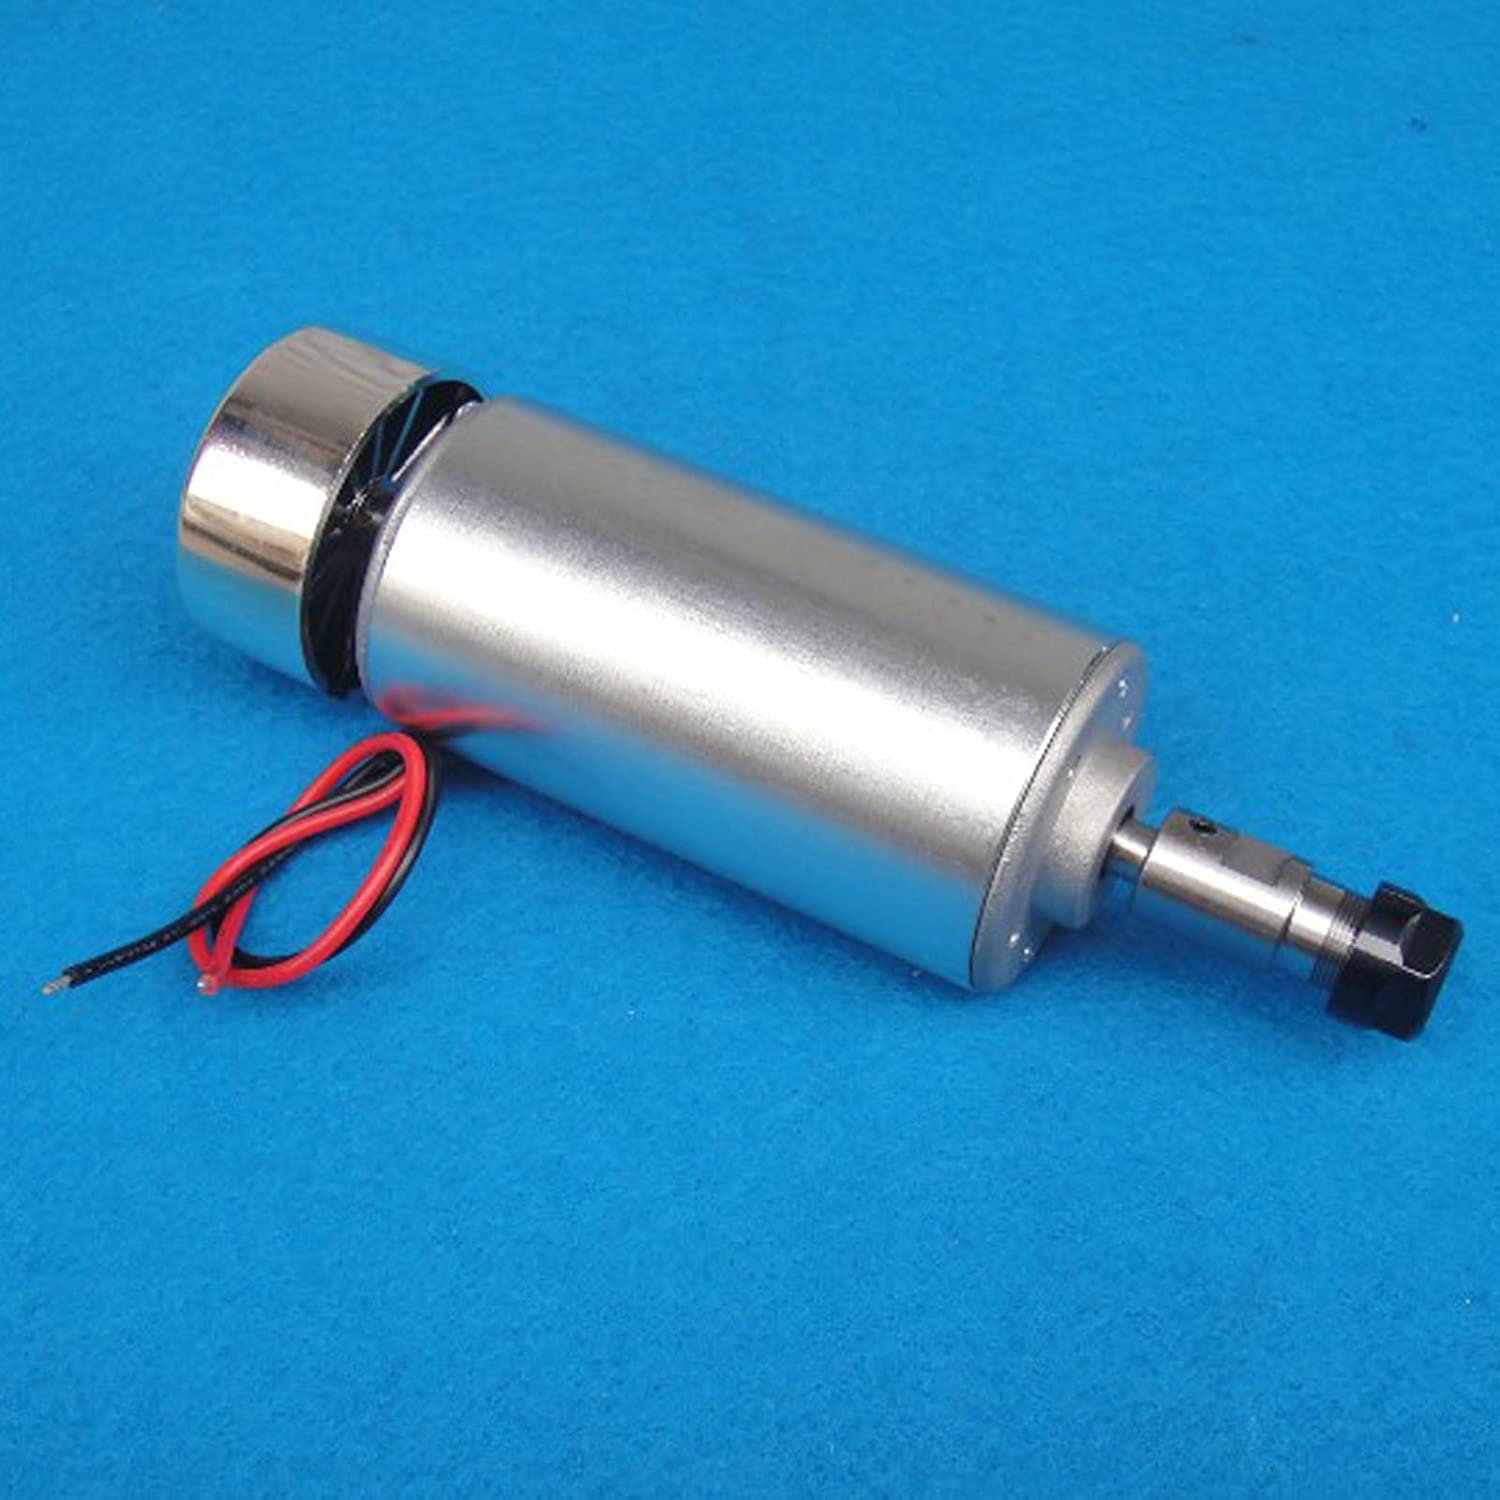 Linaatales 400W NEW 400W Air Cooled Spindle Motor Engraving Milling DC 12V-48V 12000rpm 3.175mmAir Cooled Spindle Motor Engraving Milling DC 12V-48V 12000rpm 3.175mm 400W High Speed Air Cooled Spindle Motor Engraving Milling DC 12V-48V 12000rpm CNC0015